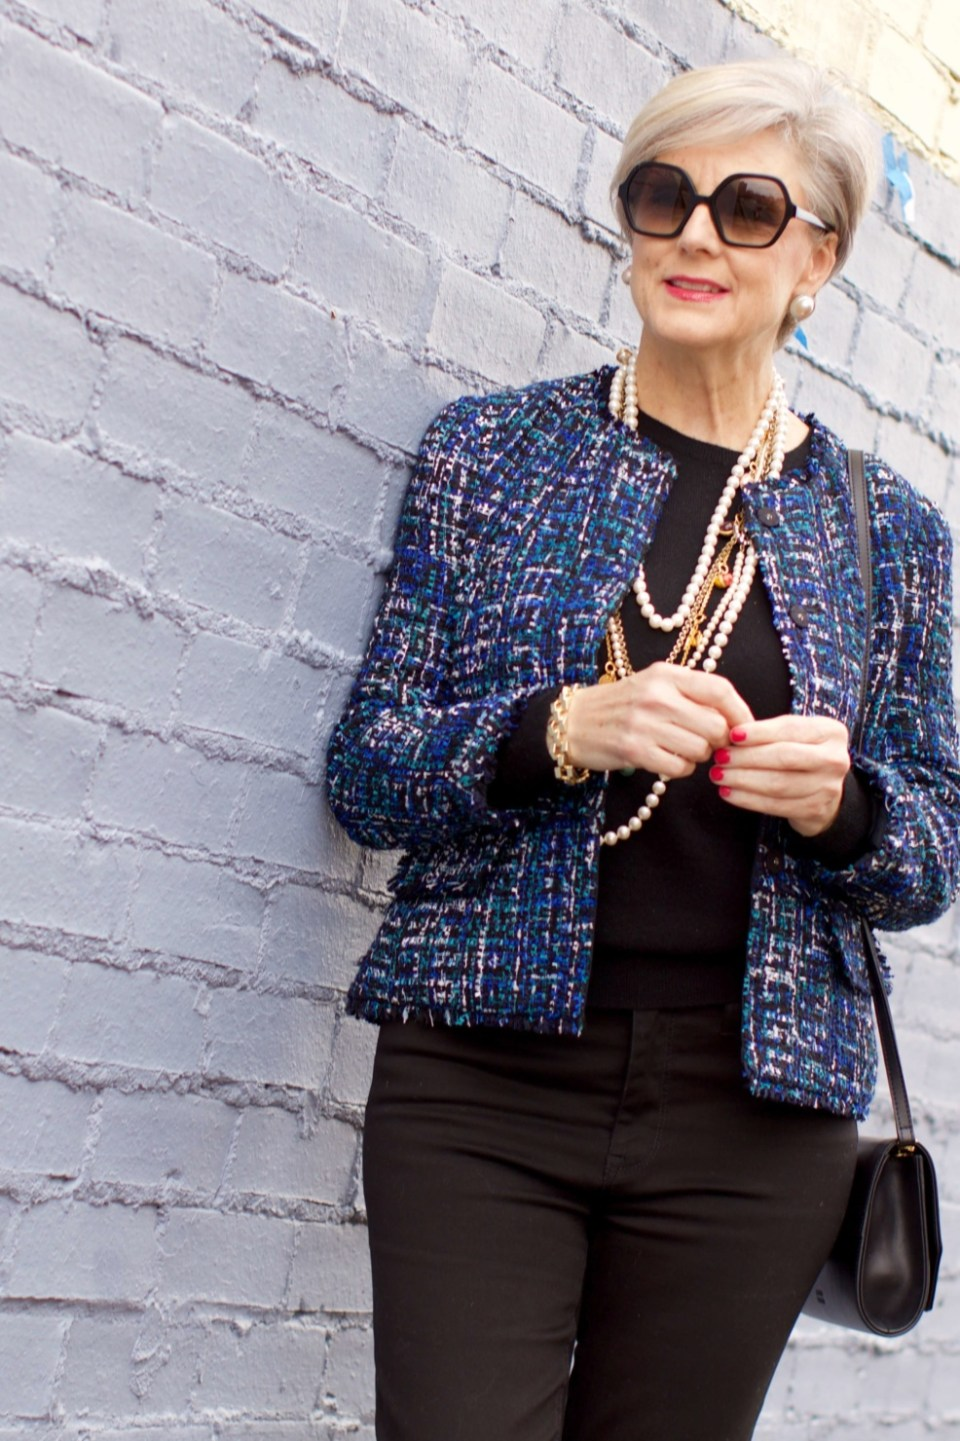 beth at Style at a Certain Age wears an Ann Taylor tweed military jacket, Everlane crewneck cashmere, J.Crew cropped flare denim, pointy-toed boots and strings of pearls